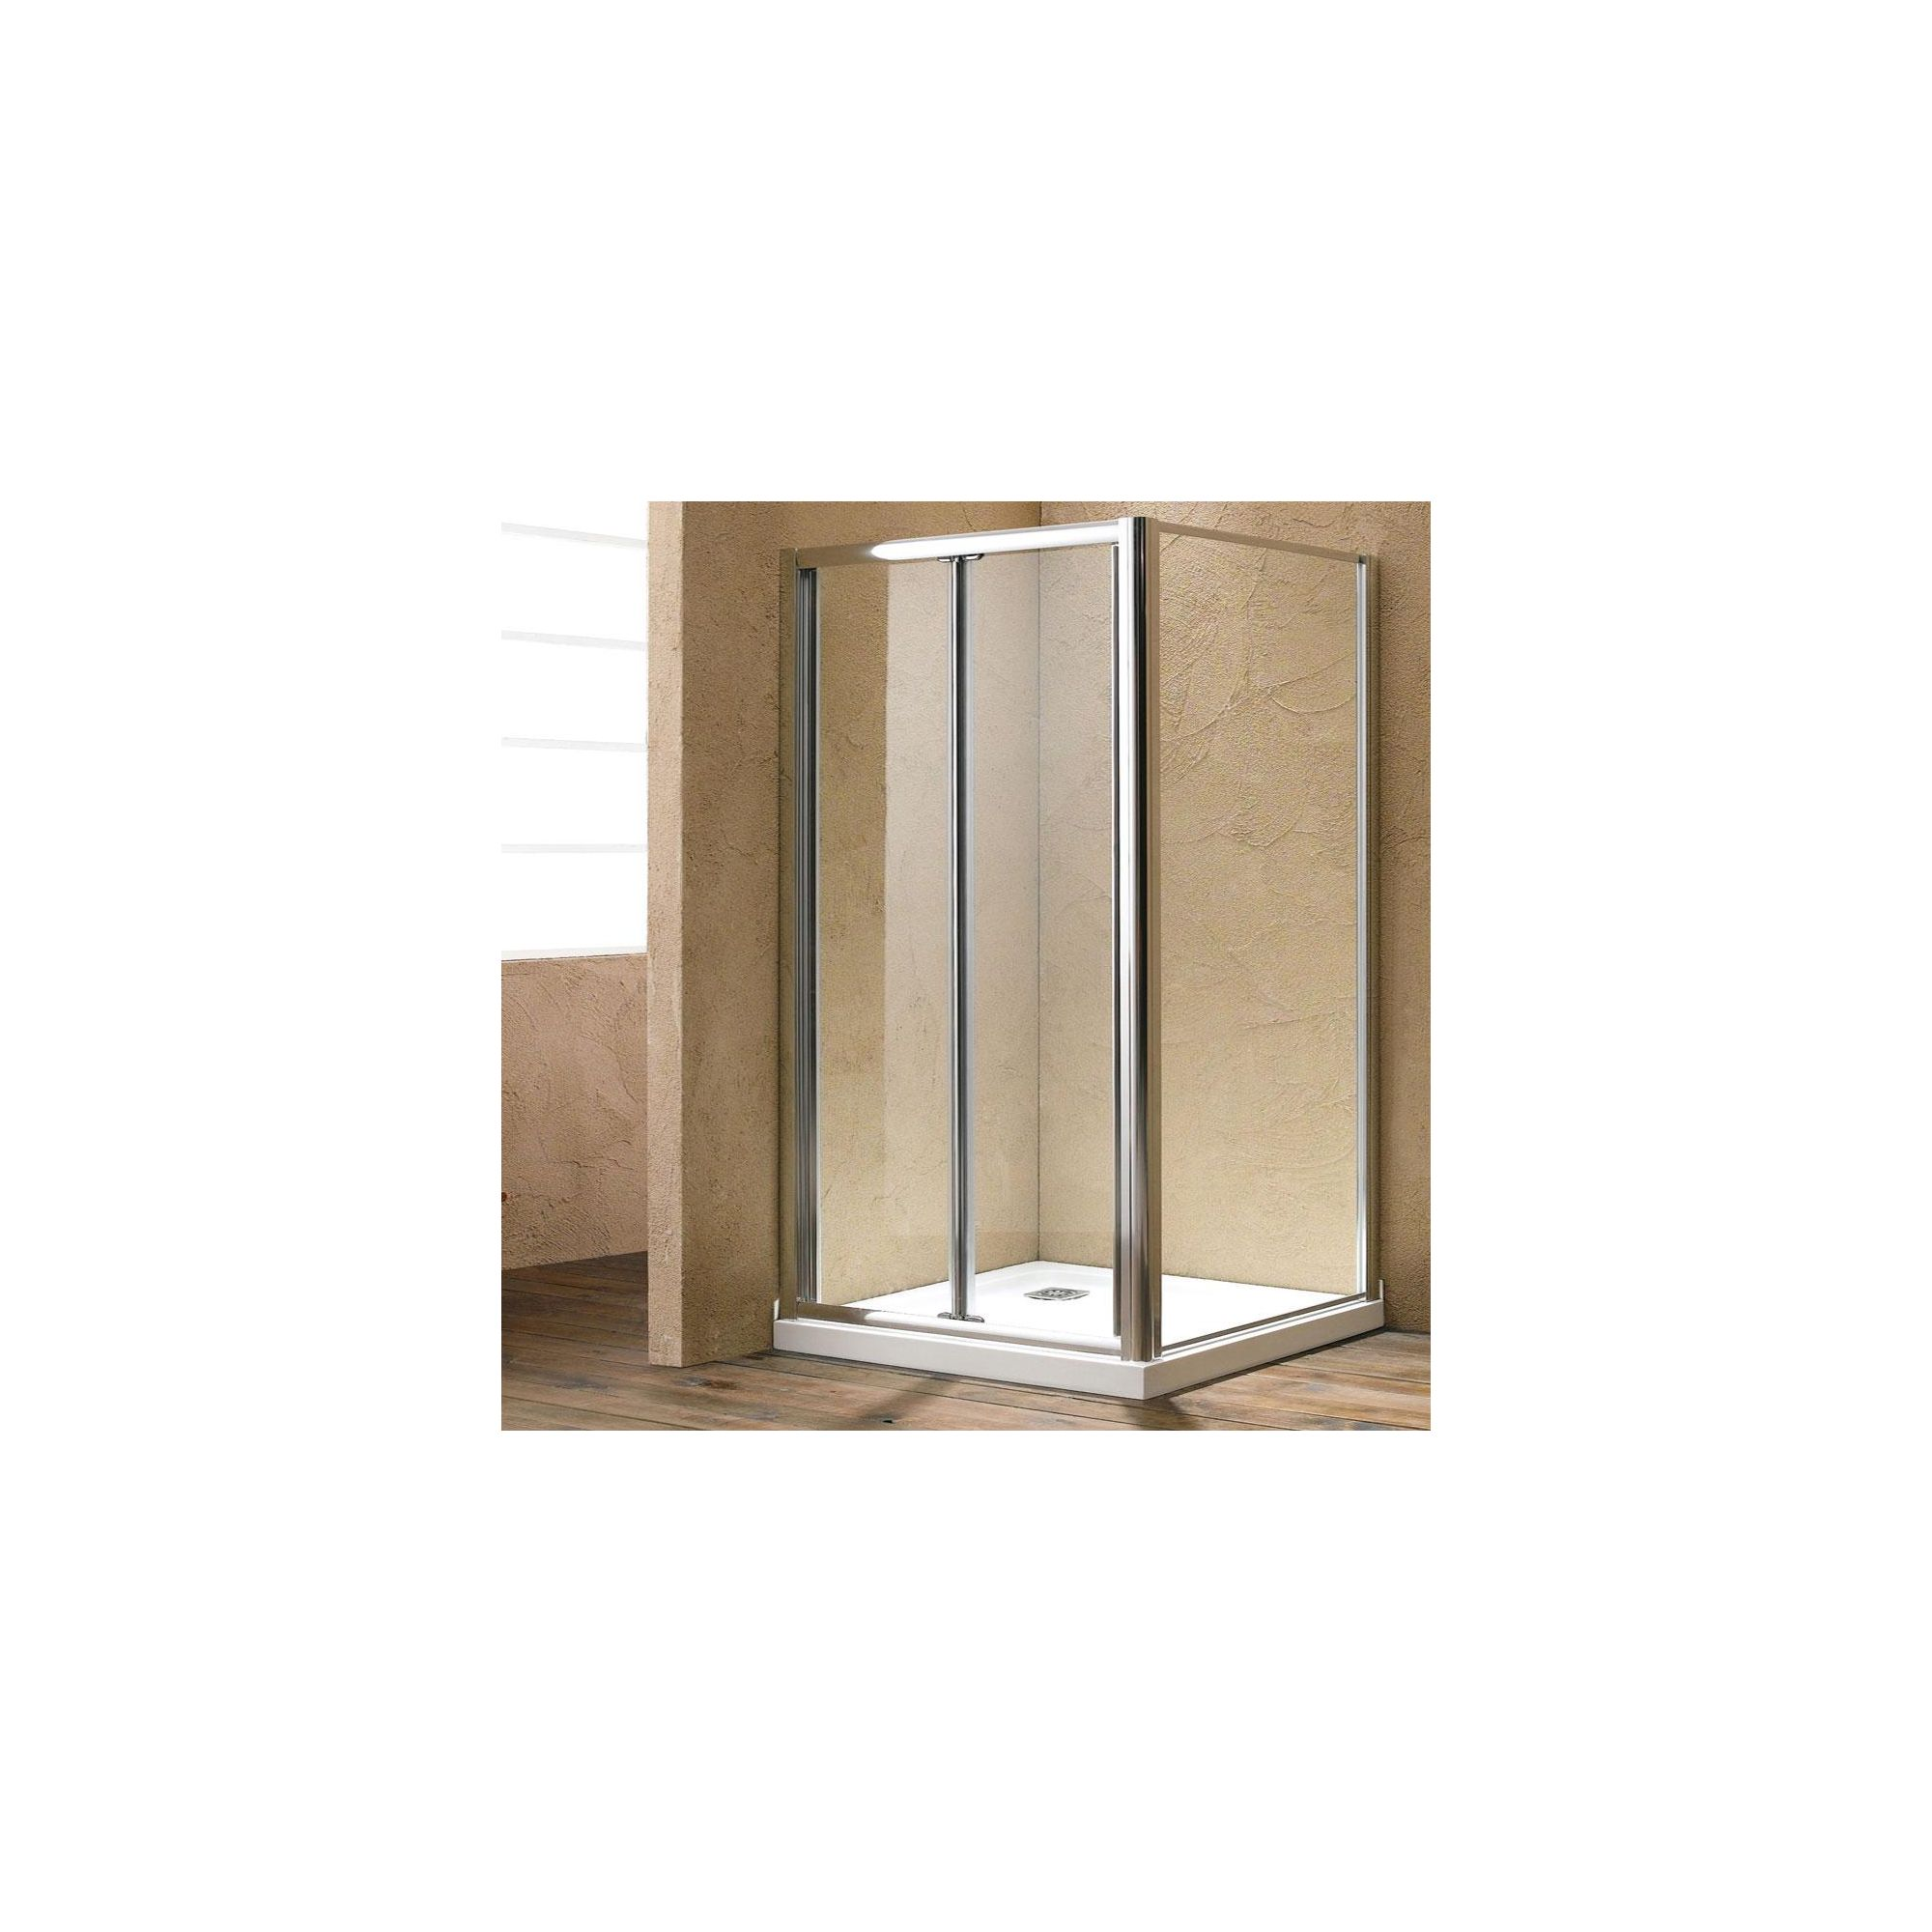 Duchy Style Twin Bi-Fold Door Shower Enclosure, 1100mm x 800mm, 6mm Glass, Low Profile Tray at Tescos Direct